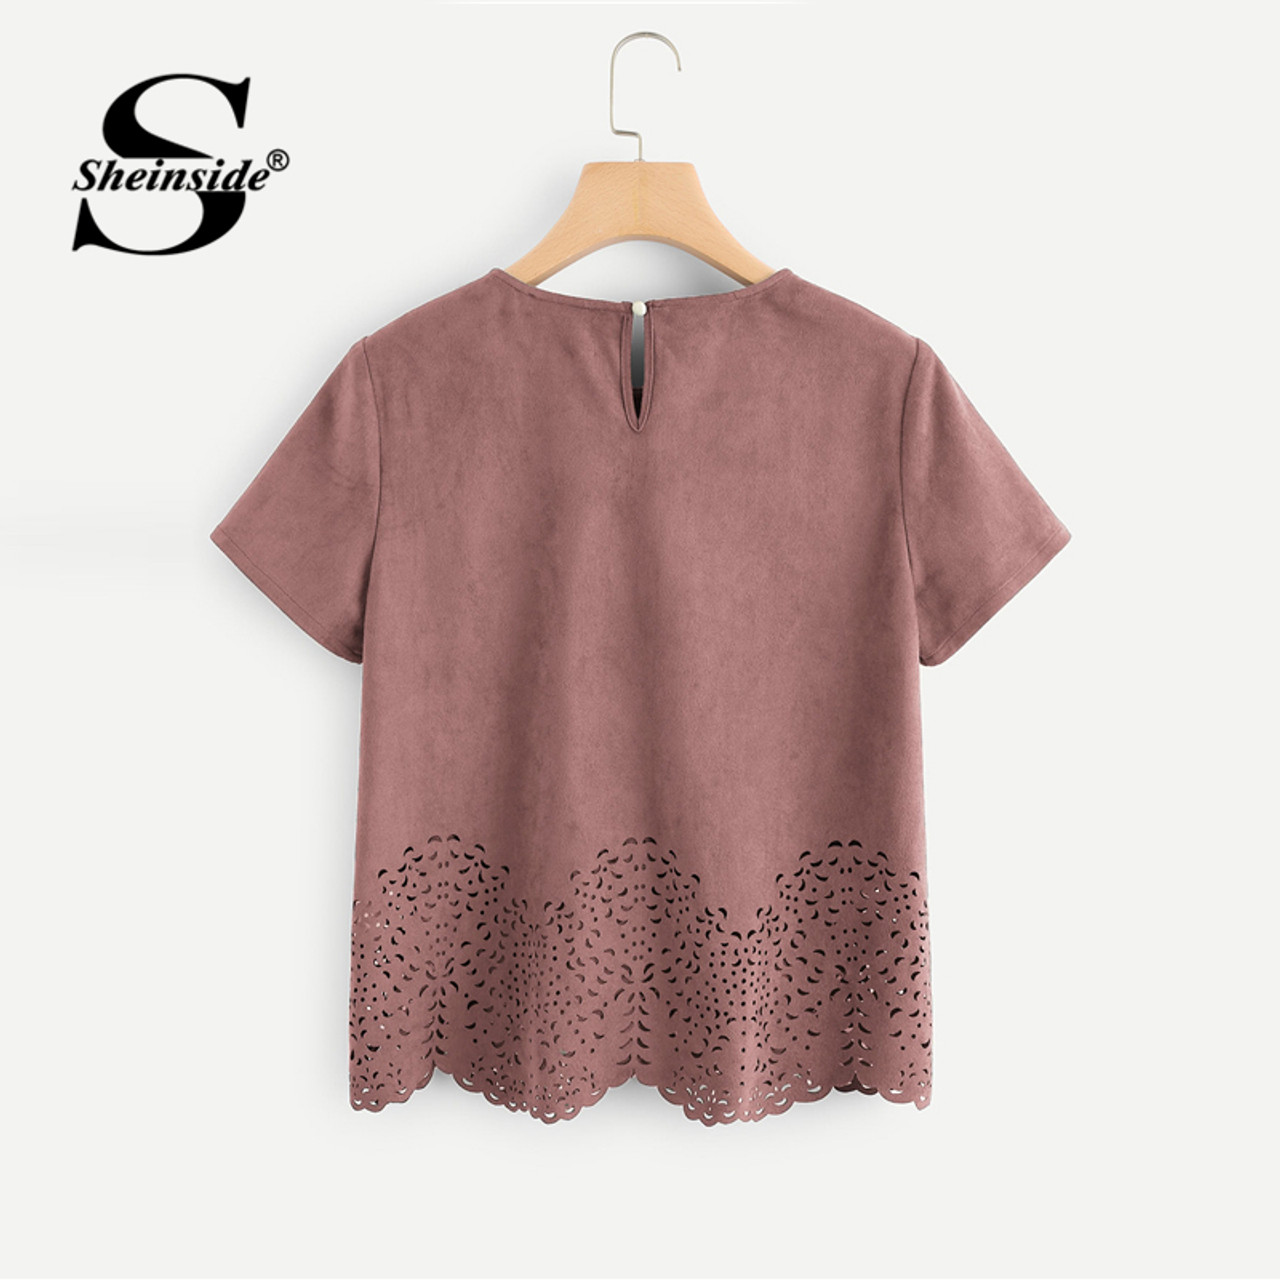 bf9a9c6f3b ... Sheinside Pink Scallop Laser Cut Out Blouse Solid Button Back Short  Sleeve Top 2018 Summer Women ...